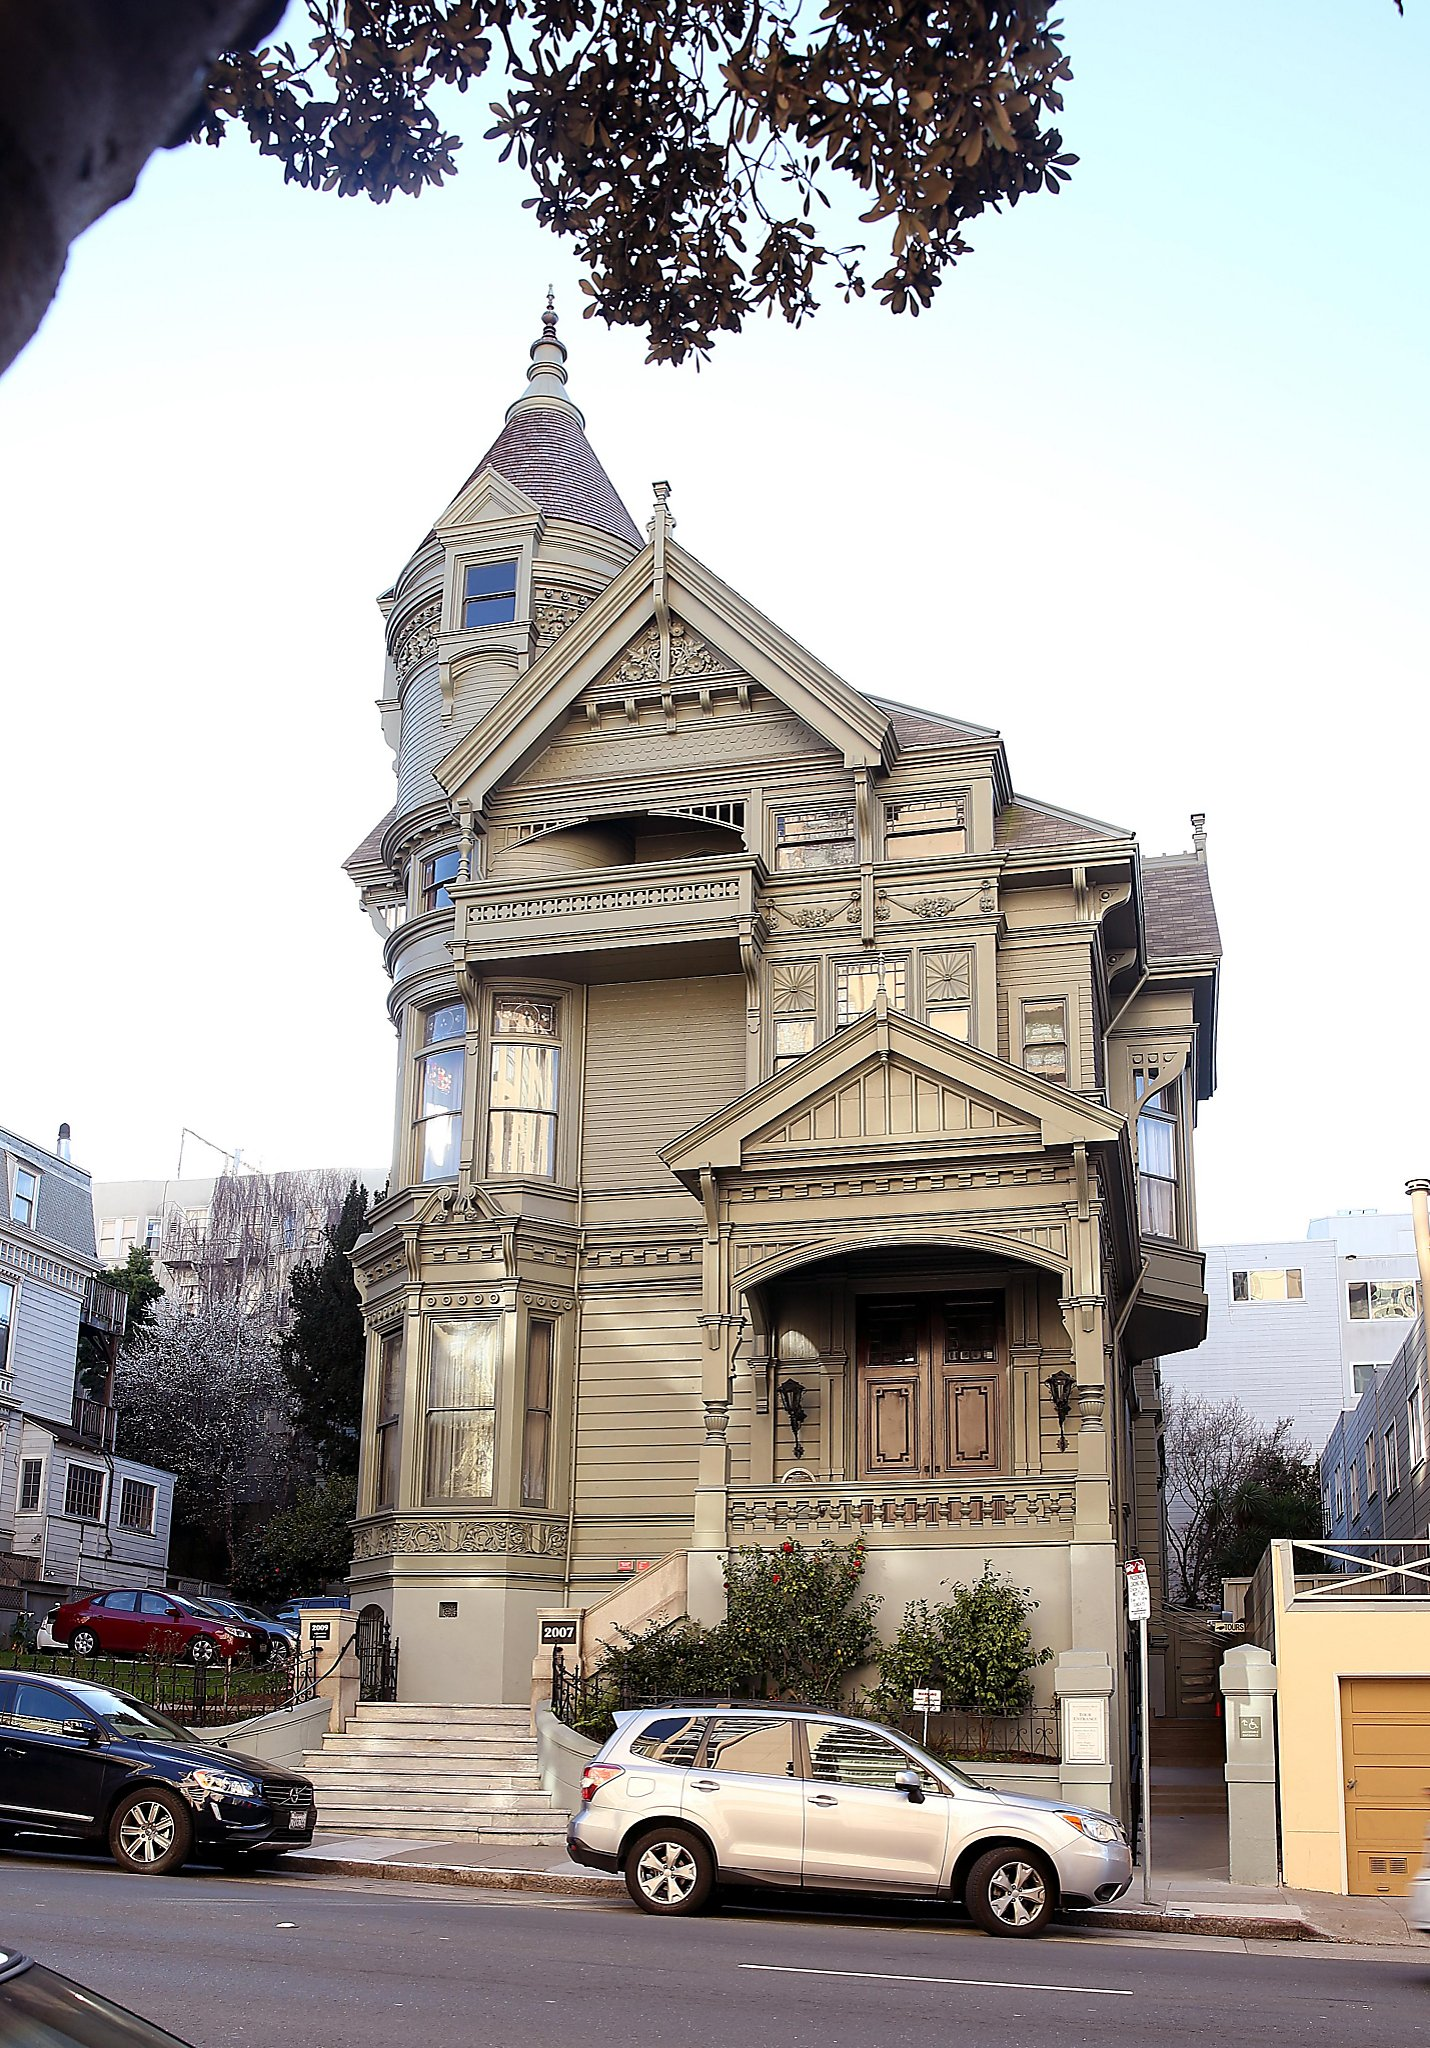 Wondrous Historic House Opens After Million Restoration Historic House Opens After Million Restoration Haas Lilienthal House Halloween Haas Lilienthal House San Francisco Ca 94109 curbed Haas Lilienthal House